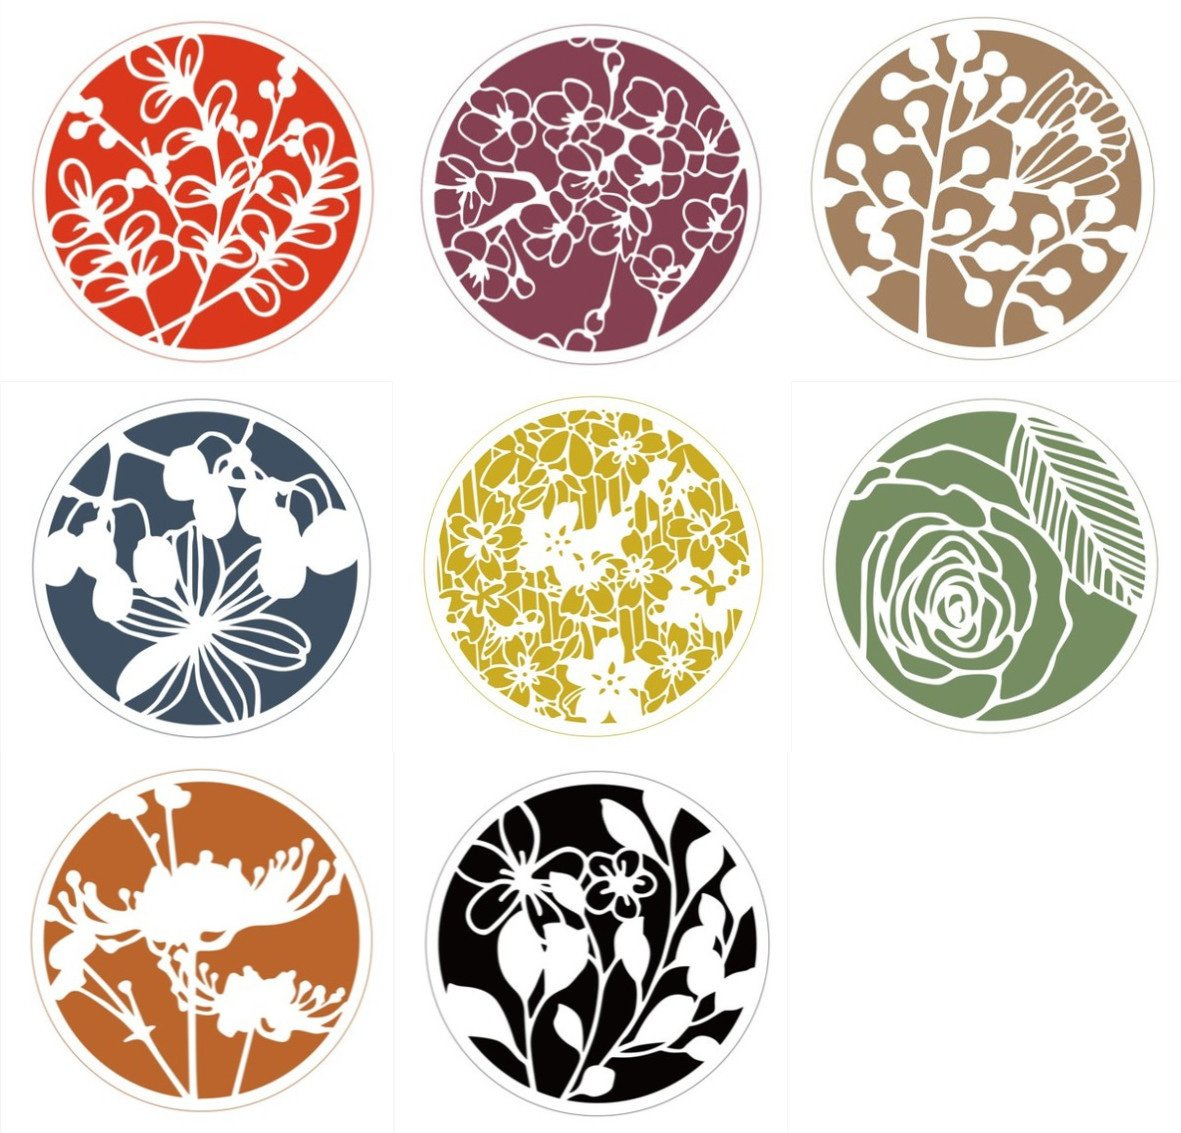 Hyamass 8pcs Mix Flower Stencils Round Shape Hollow Out Painting Stencils Drawing Templates